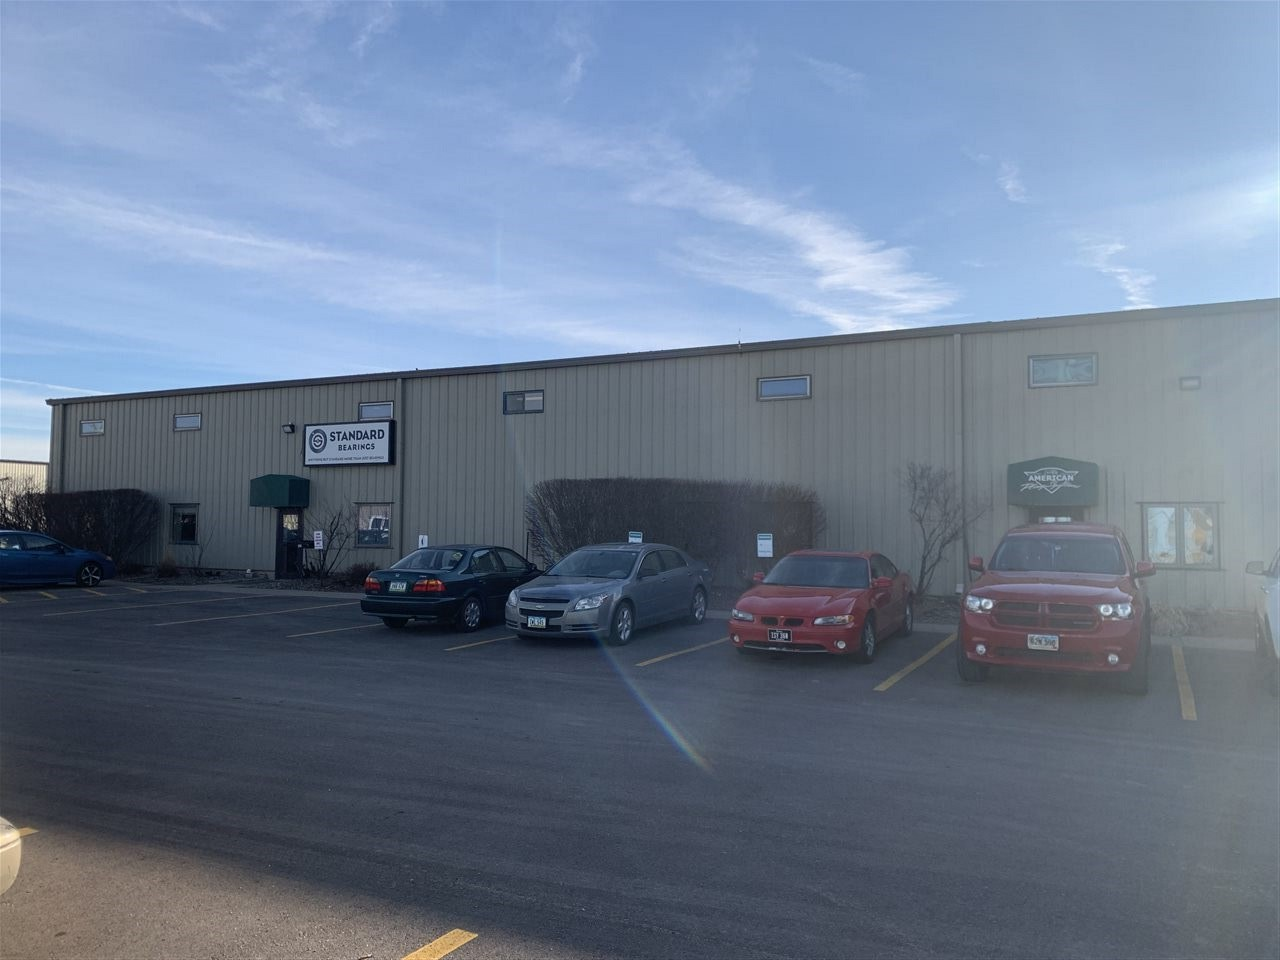 Property for sale at 600 N Derby Ln., Suite 1A, No. Sioux City,  SD 57049